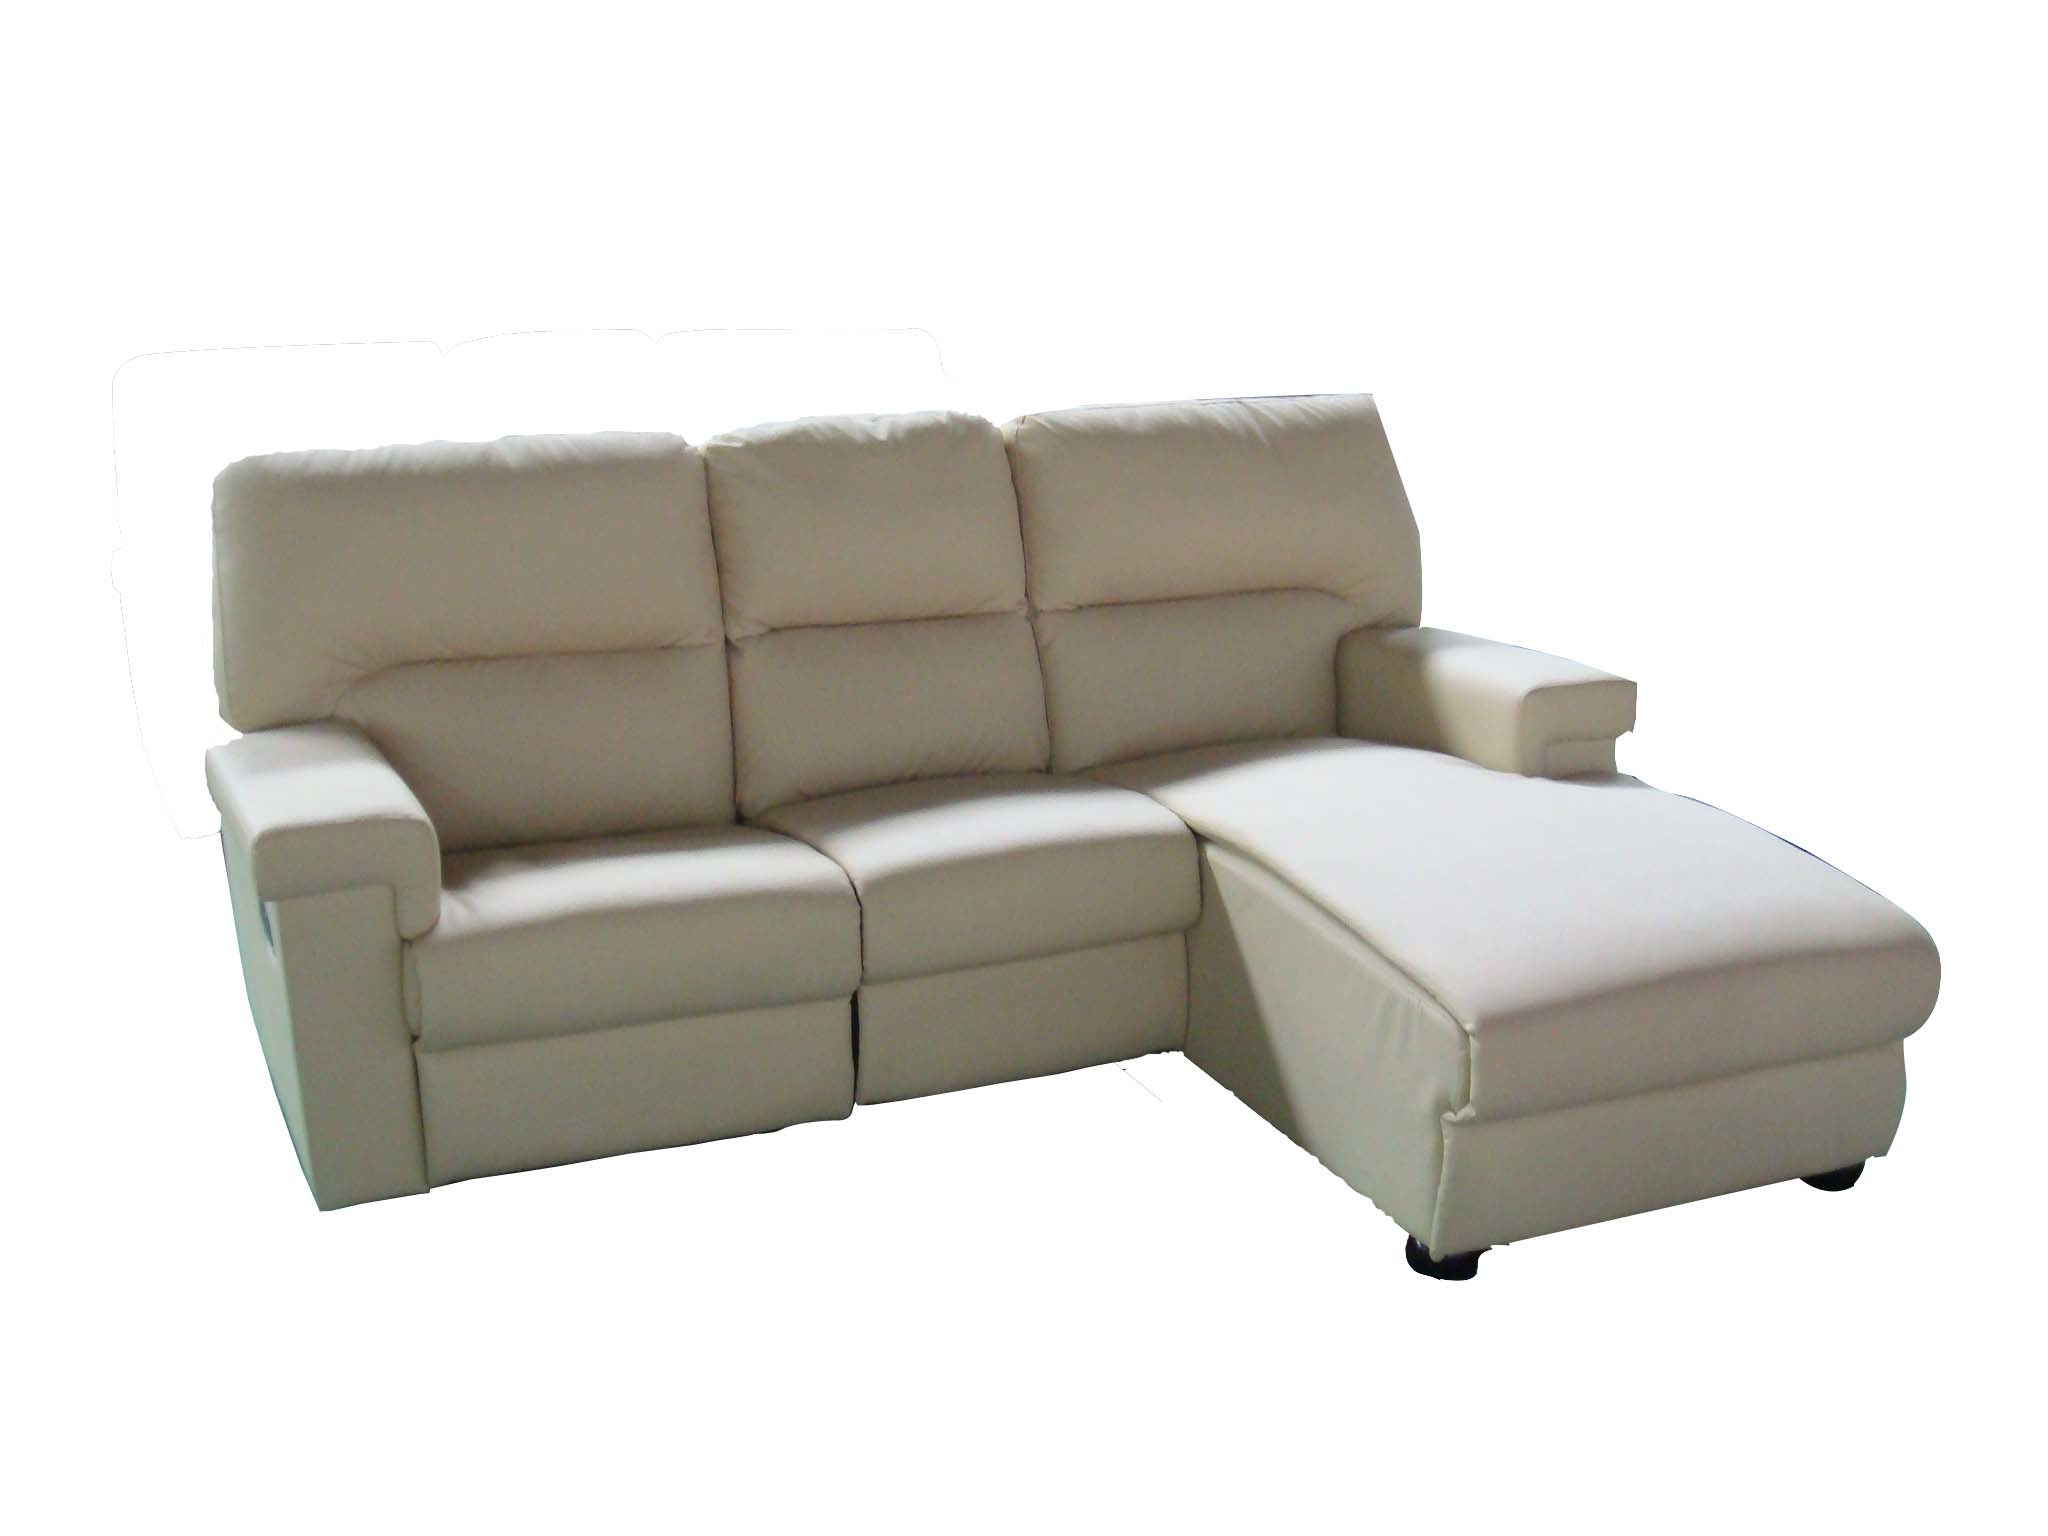 Designer sectional sofa sofa design Designer loveseats